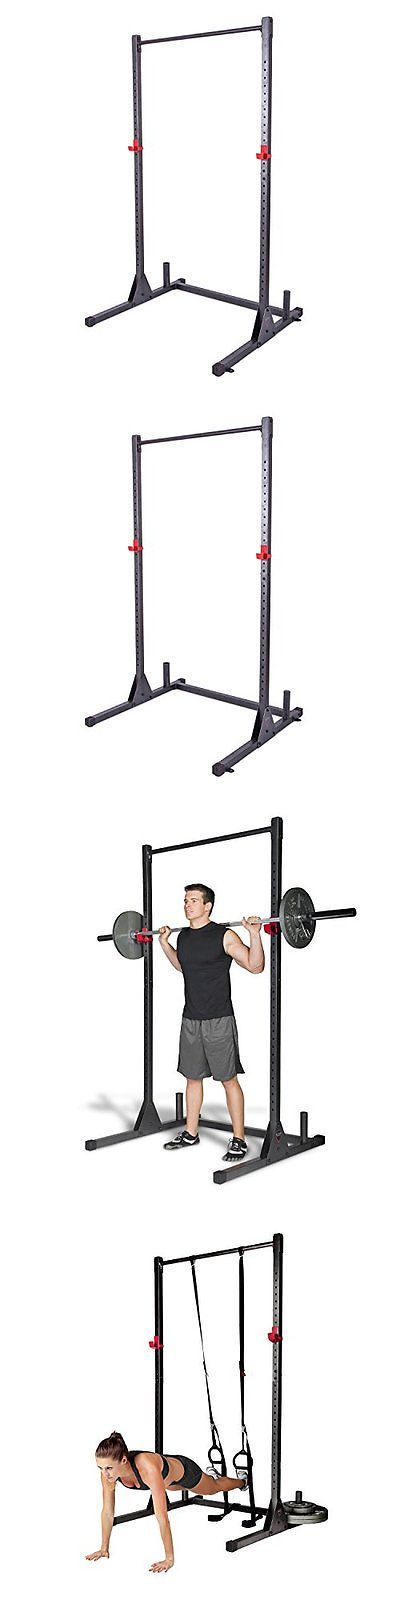 Power Racks and Smith Machines 179815: Pull Up Stand Barbell Training Rack Cap Equipment Steel Gym Exercise Station New -> BUY IT NOW ONLY: $69.79 on eBay!